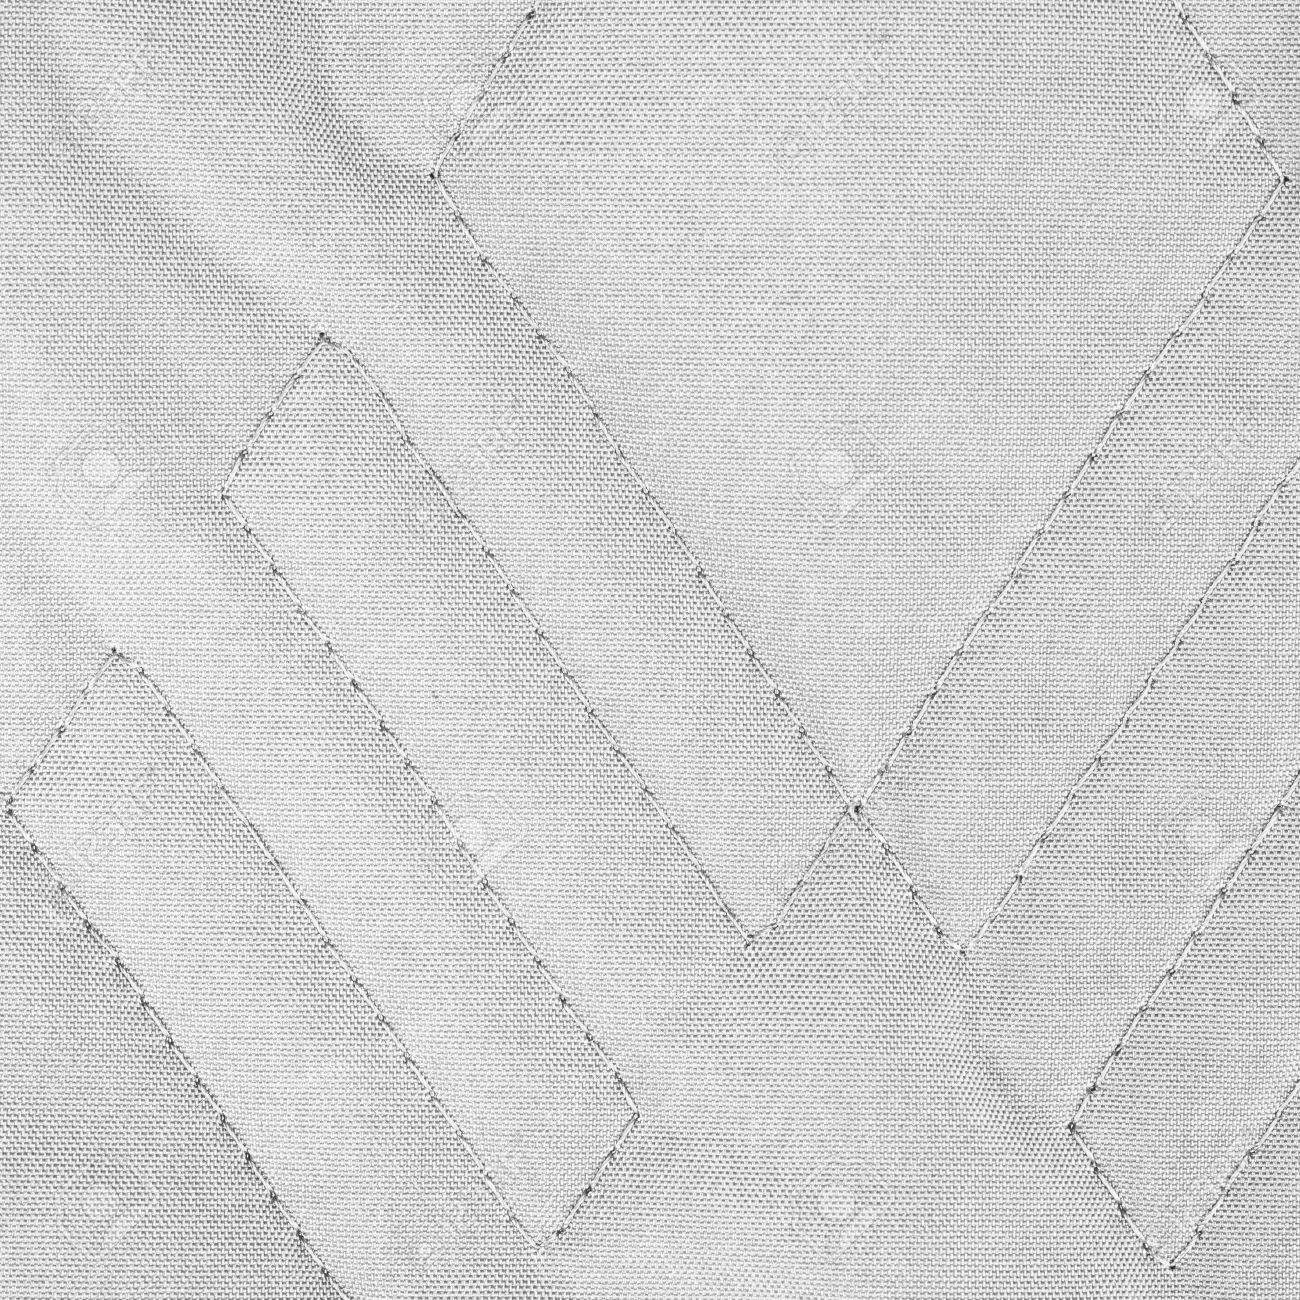 Quilted Fabric White Quilted Fabric Texture With Geometric Pattern